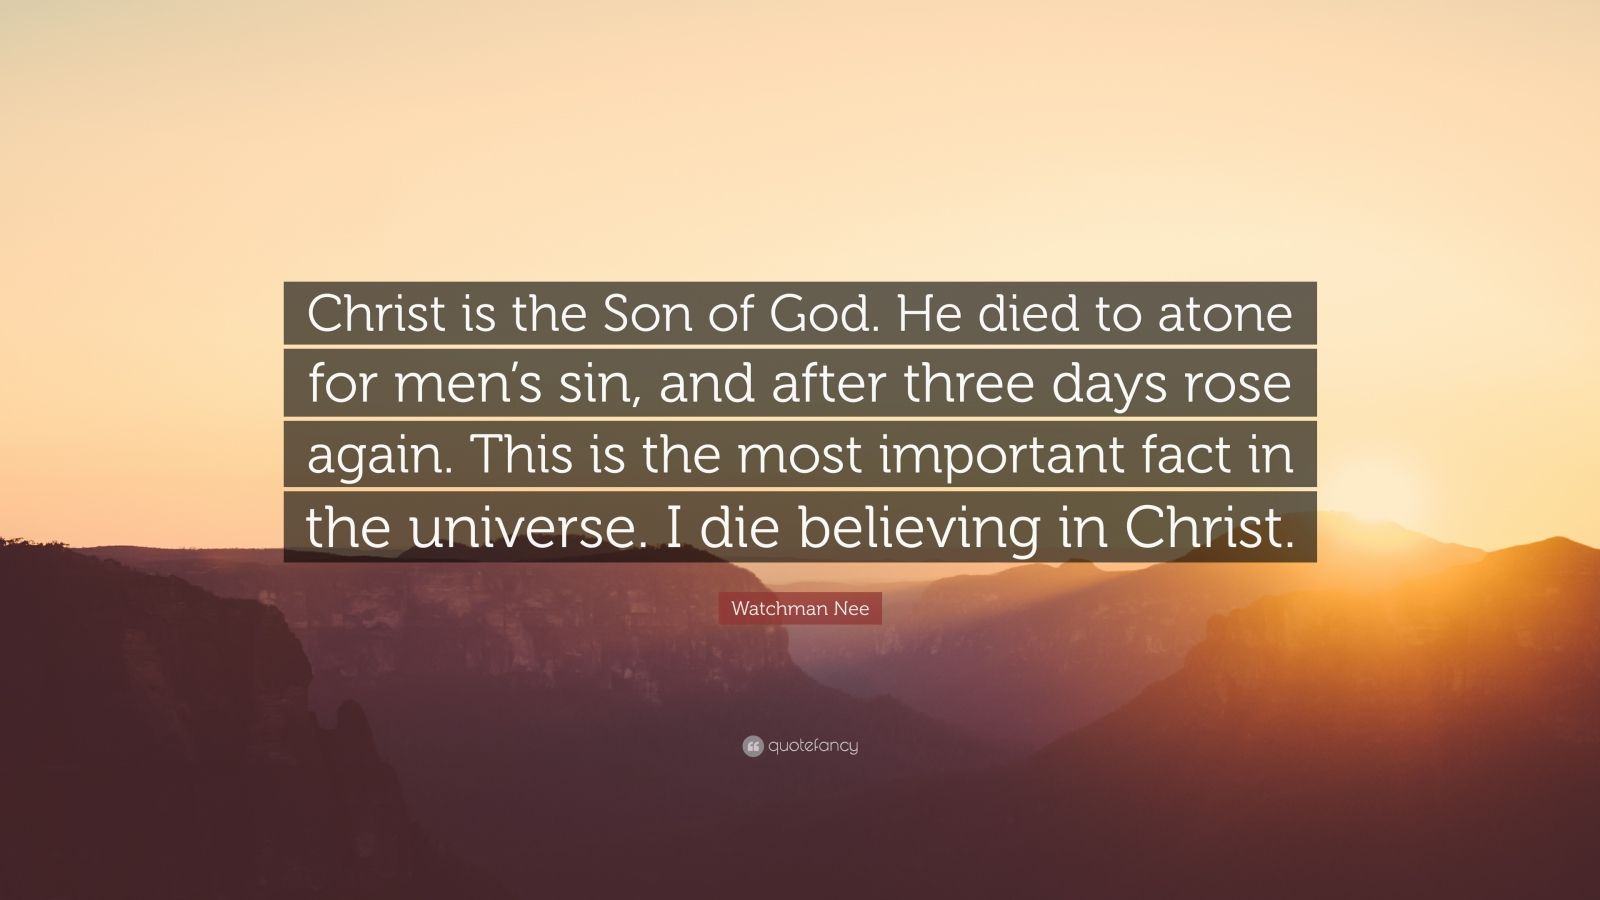 """Watchman Nee Quote: """"Christ is the Son of God. He died to atone for men's sin, and after three days rose again. This is the most important fact in the universe. I die believing in Christ."""""""